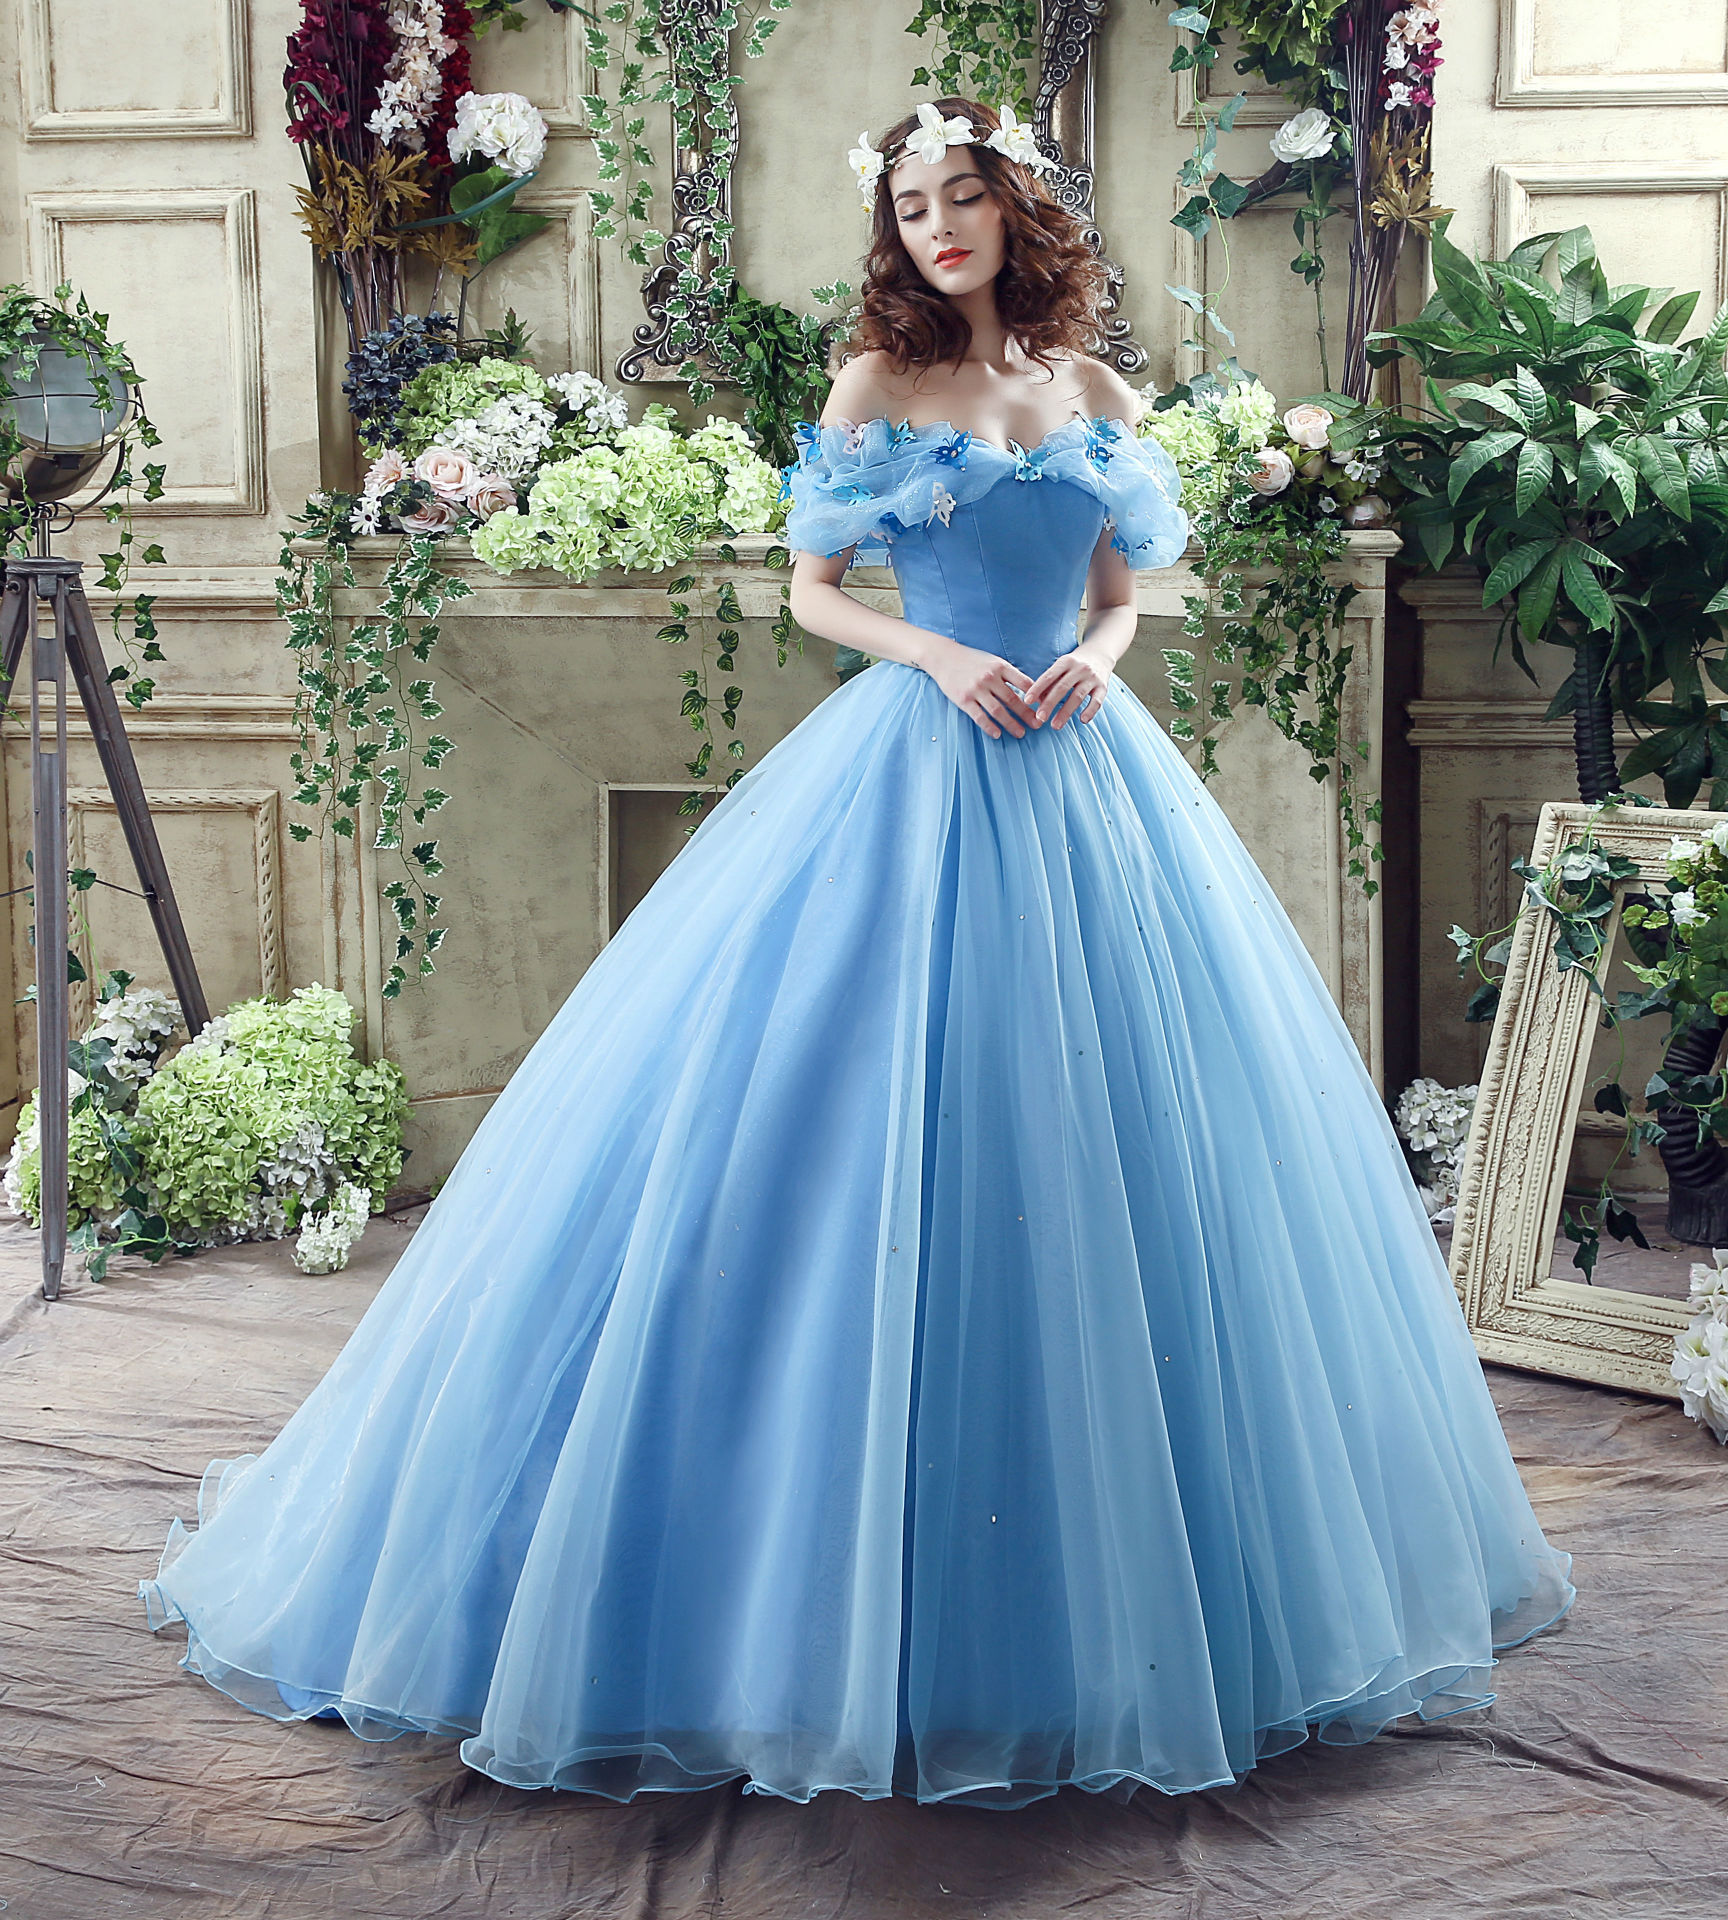 Details about Wedding Dresses Blue Cinderella